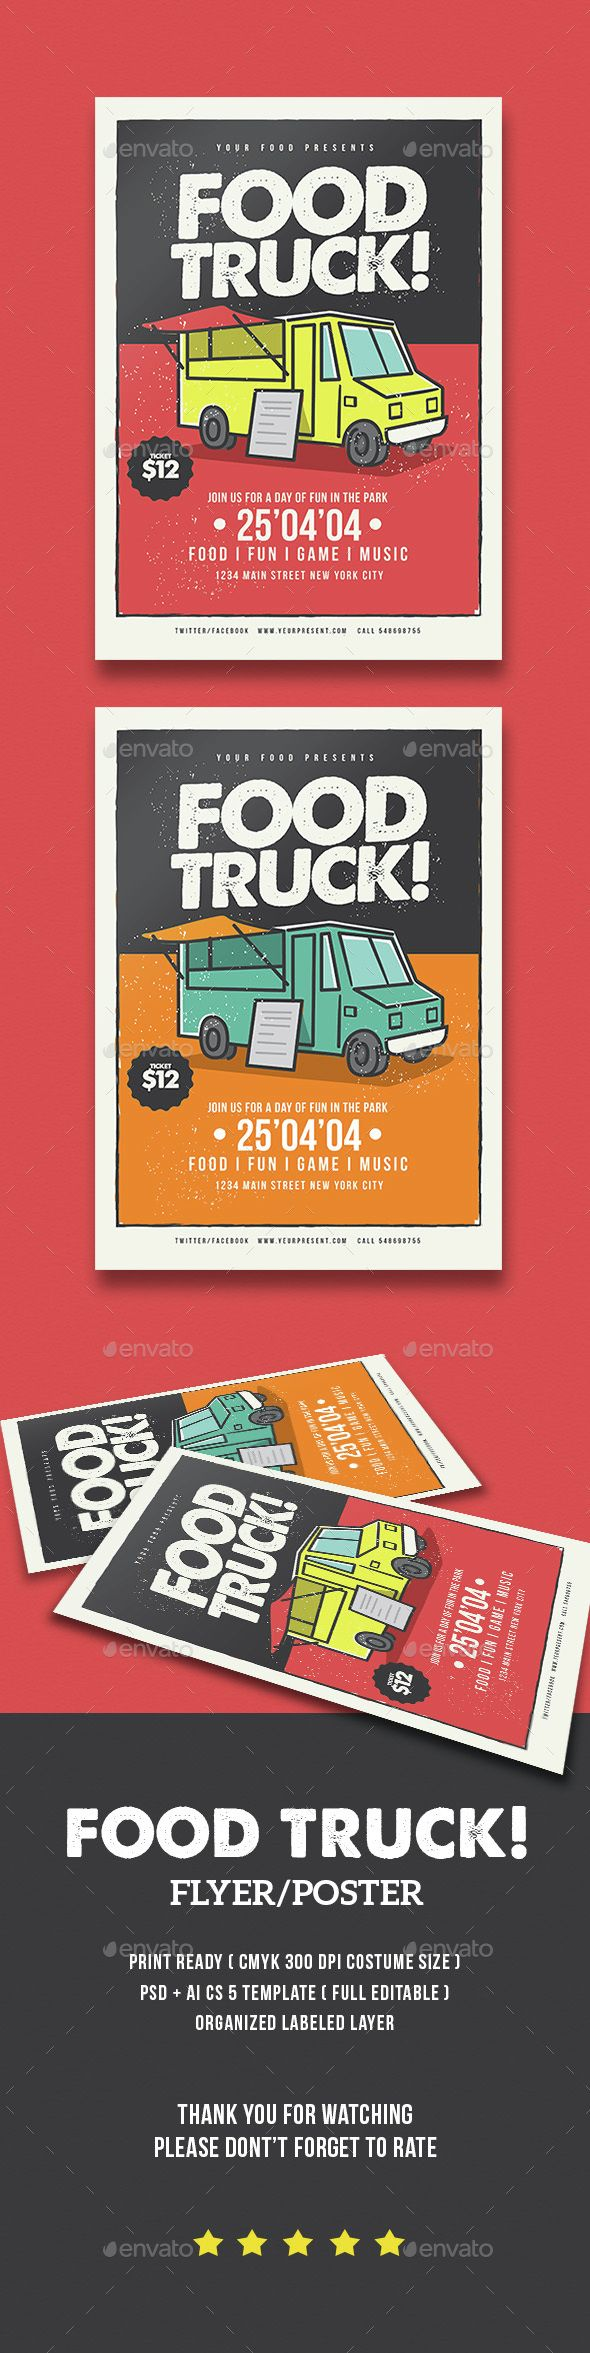 25 best ideas about food poster design on pinterest for Food truck design software